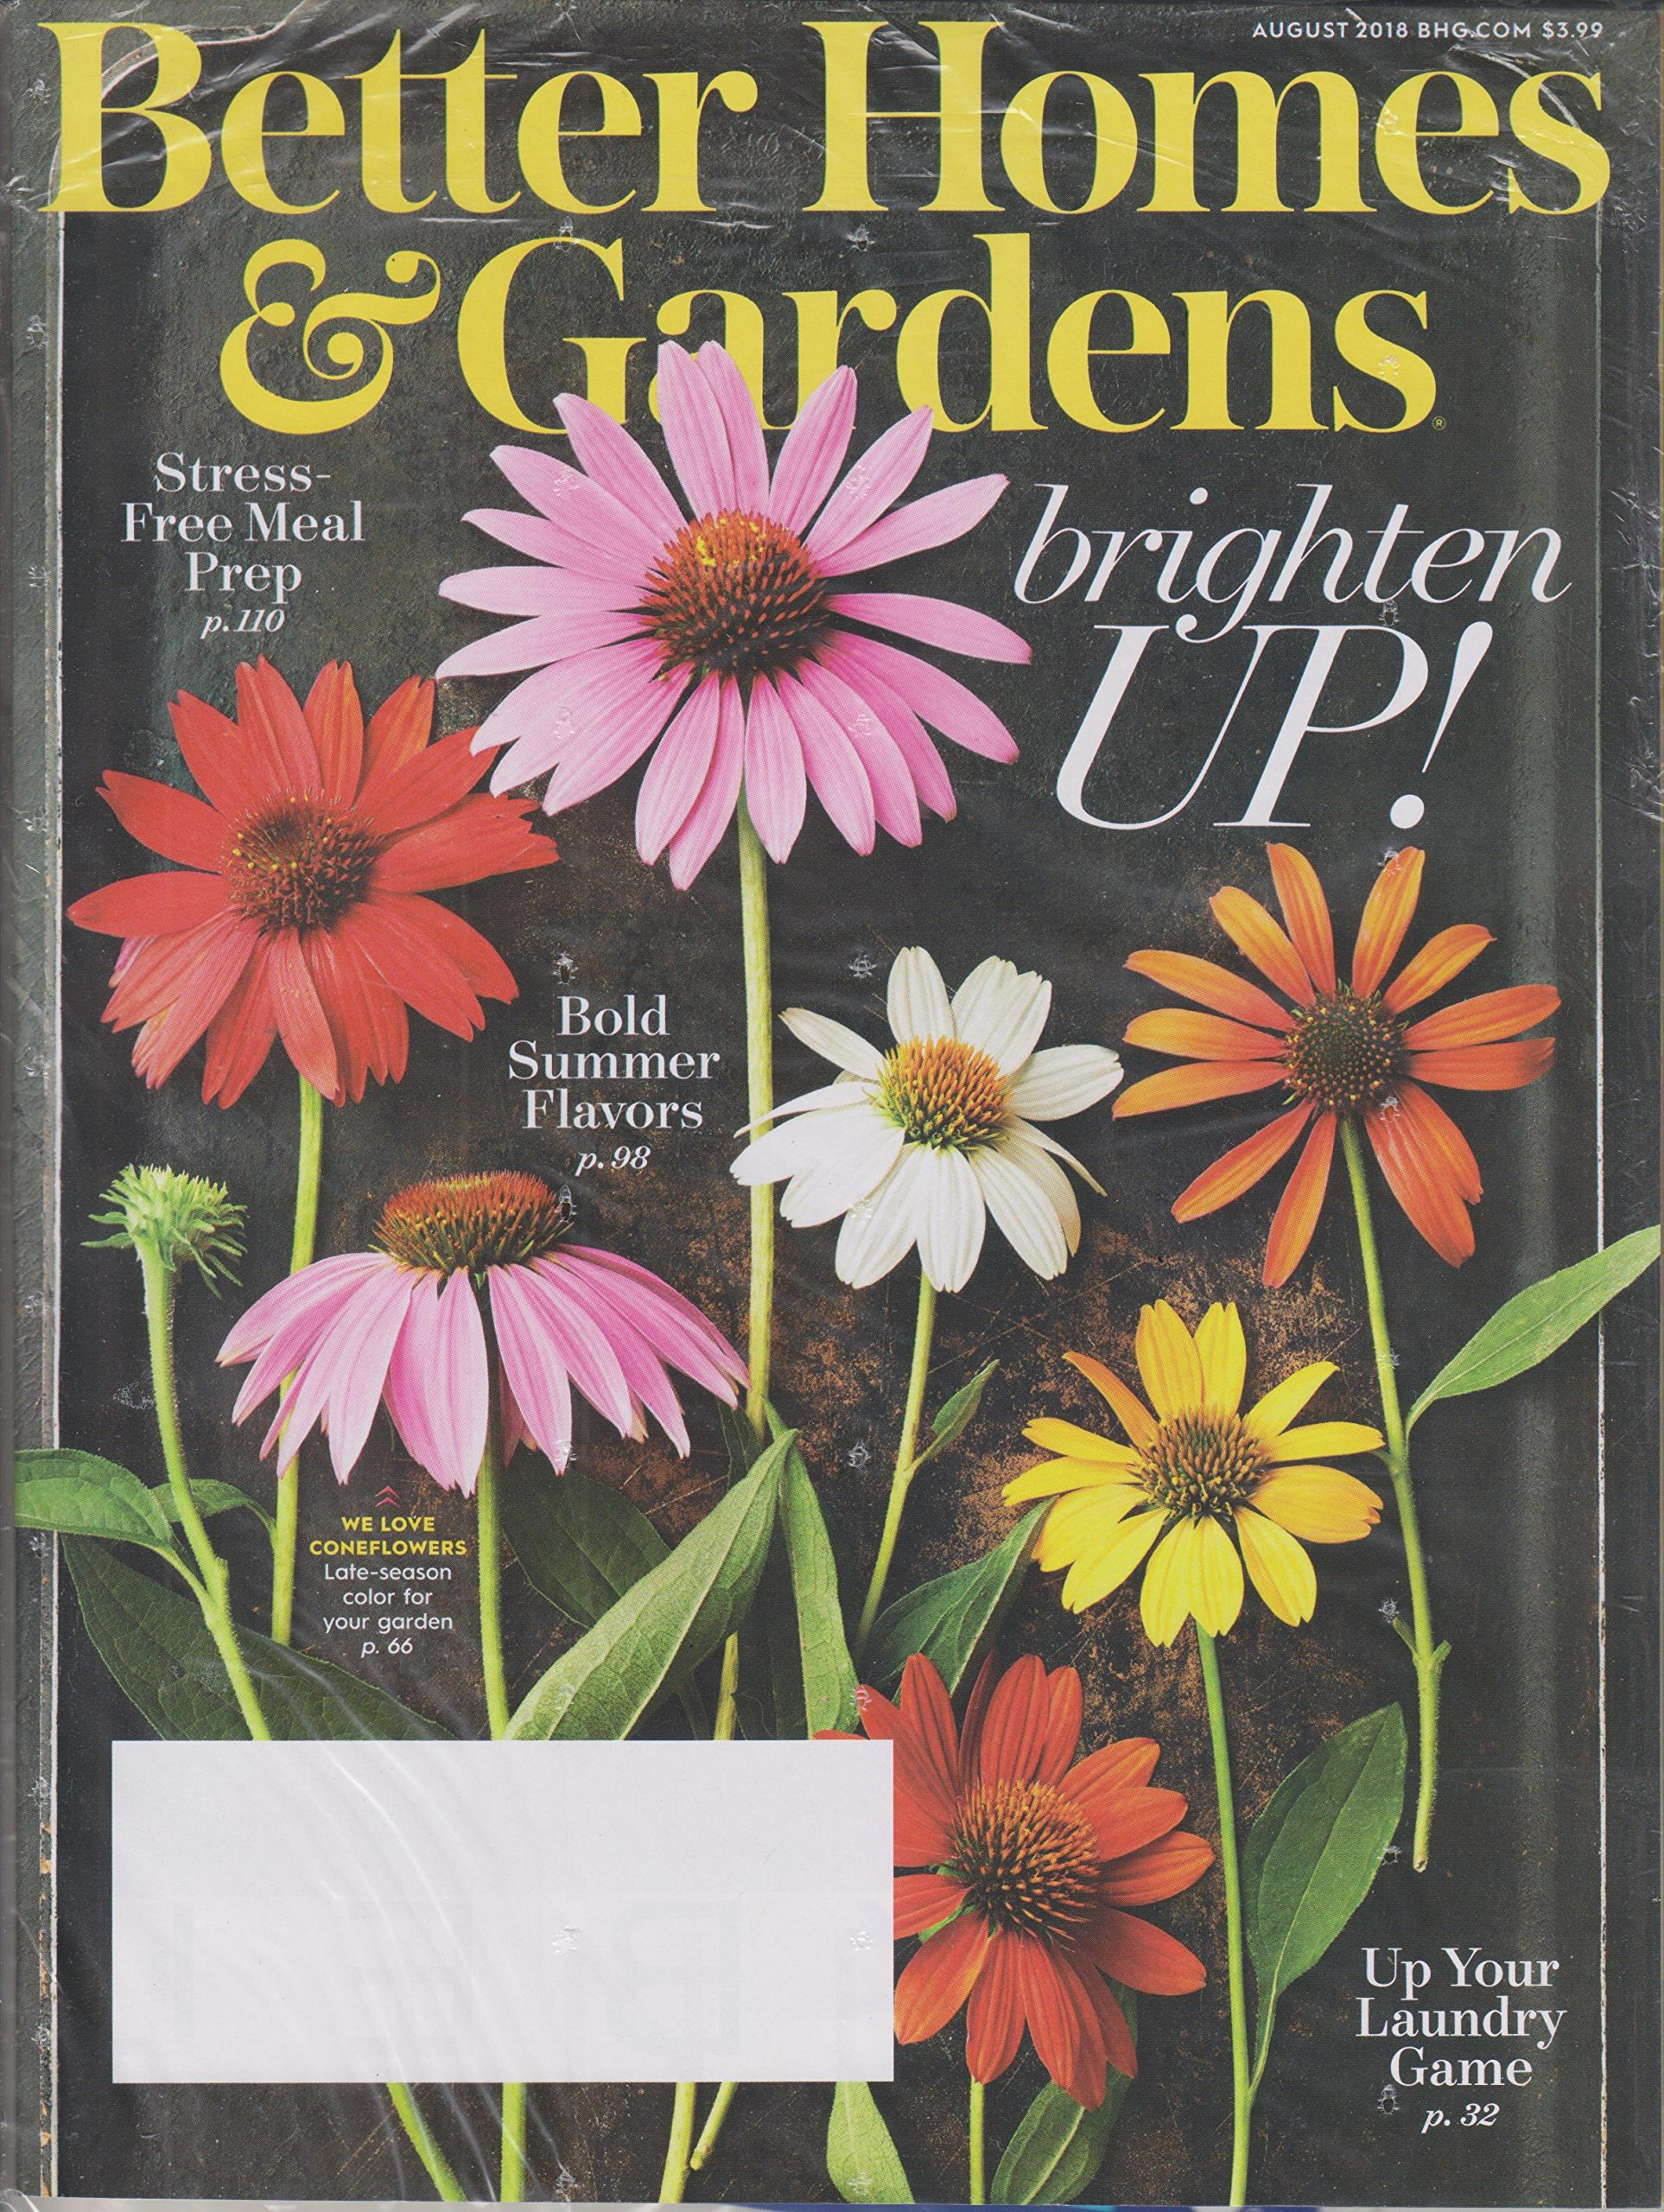 Better Homes U0026 Gardens August 2018 Brighten Up!, Bold Summer Flavors,  Stress Free Meal Prep; Up Your Laundry Game: Various: Amazon.com: Books